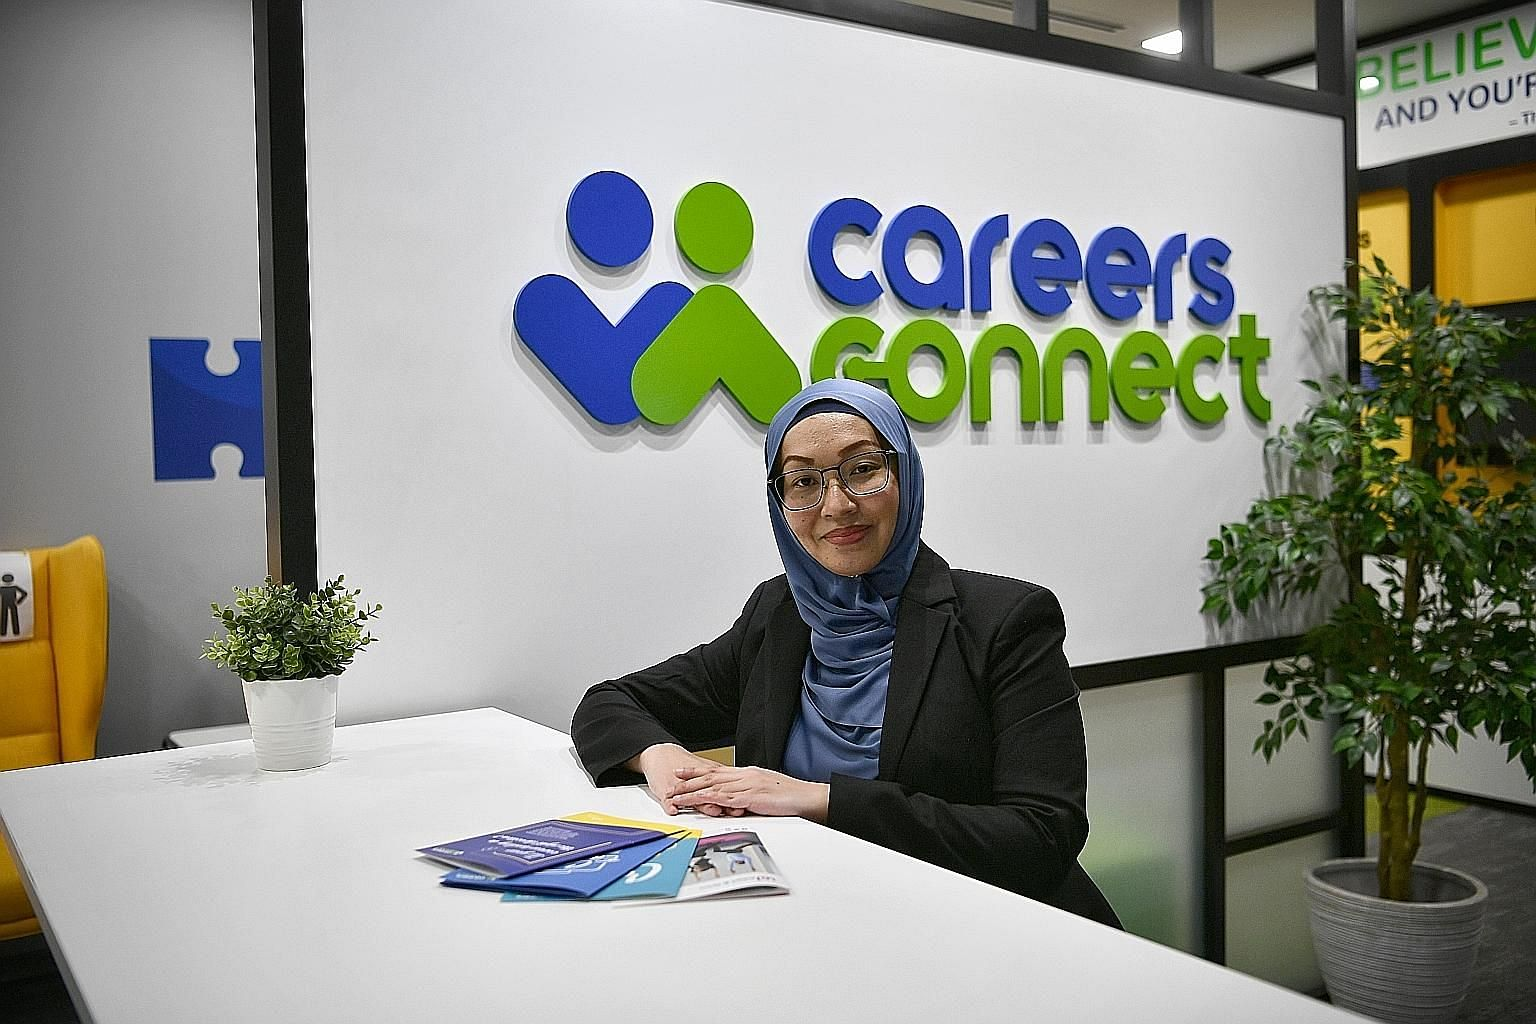 Workforce Singapore senior career ambassador Fauzyah Johari has seen more clients in recent months. Apart from assisting in job searches, she also offers advice on upgrading their skills to remain relevant.